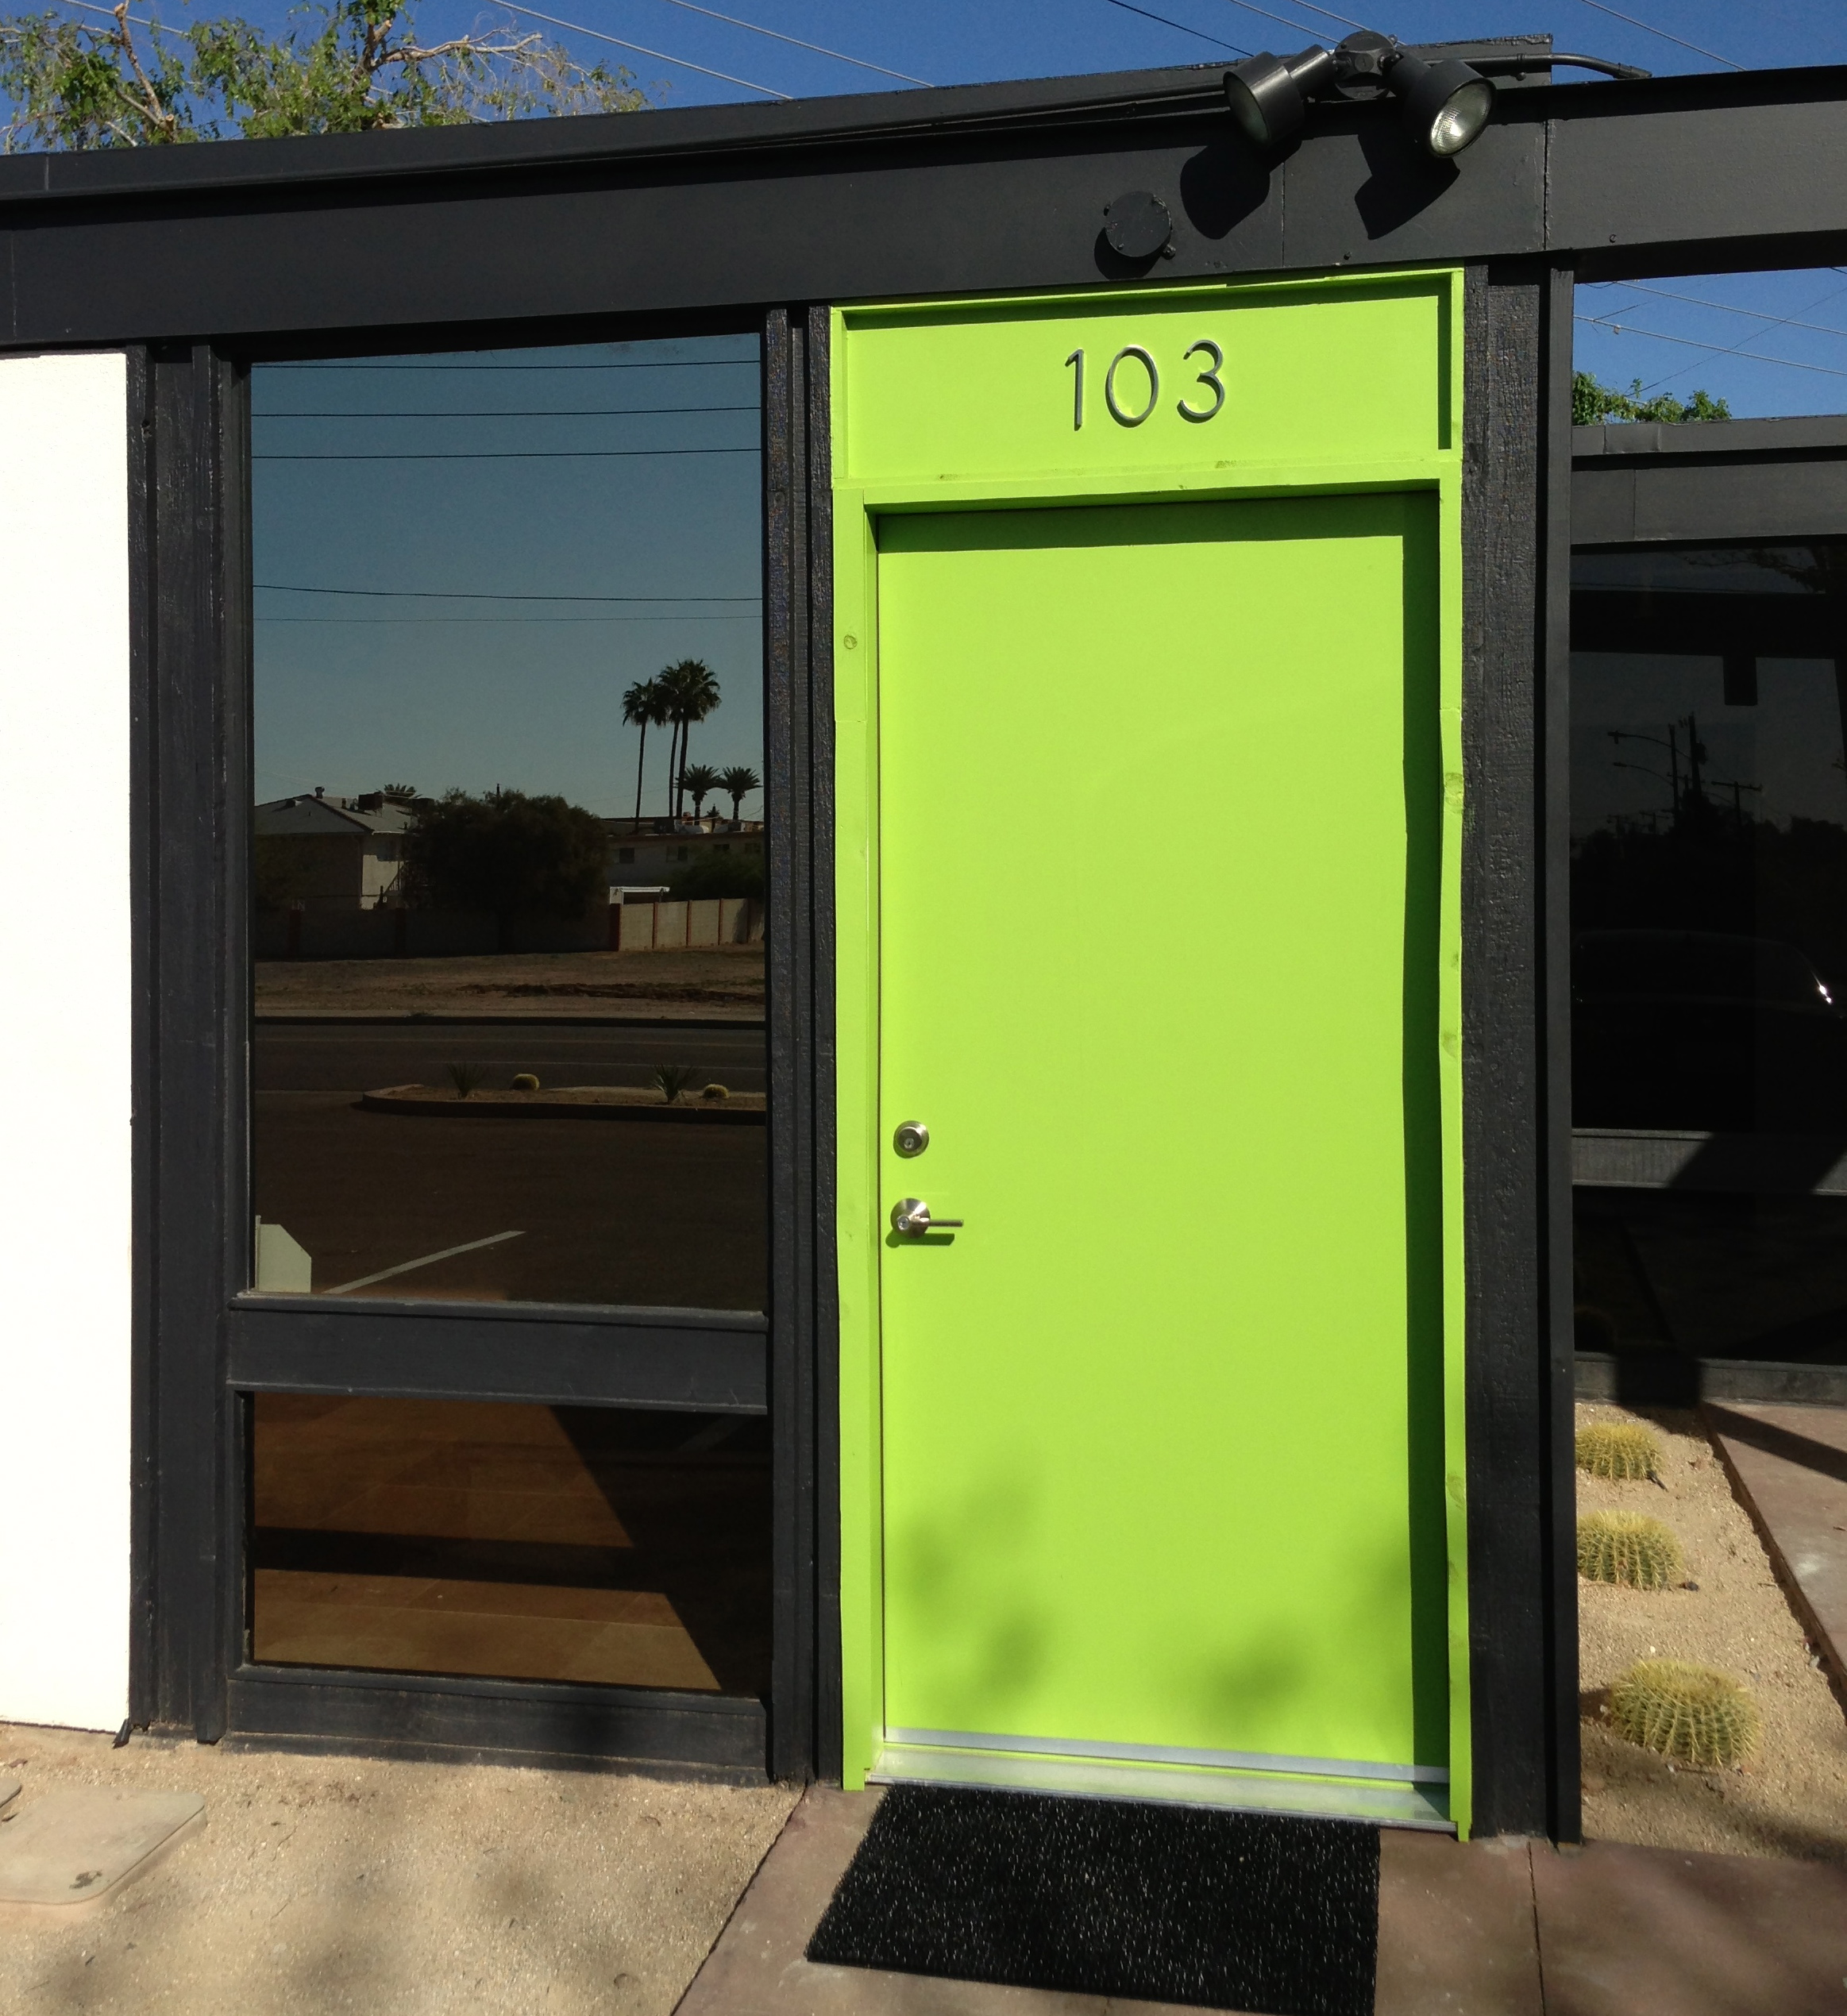 The Doyle Building Modern Office Space For Lease In Phoenix Arizona